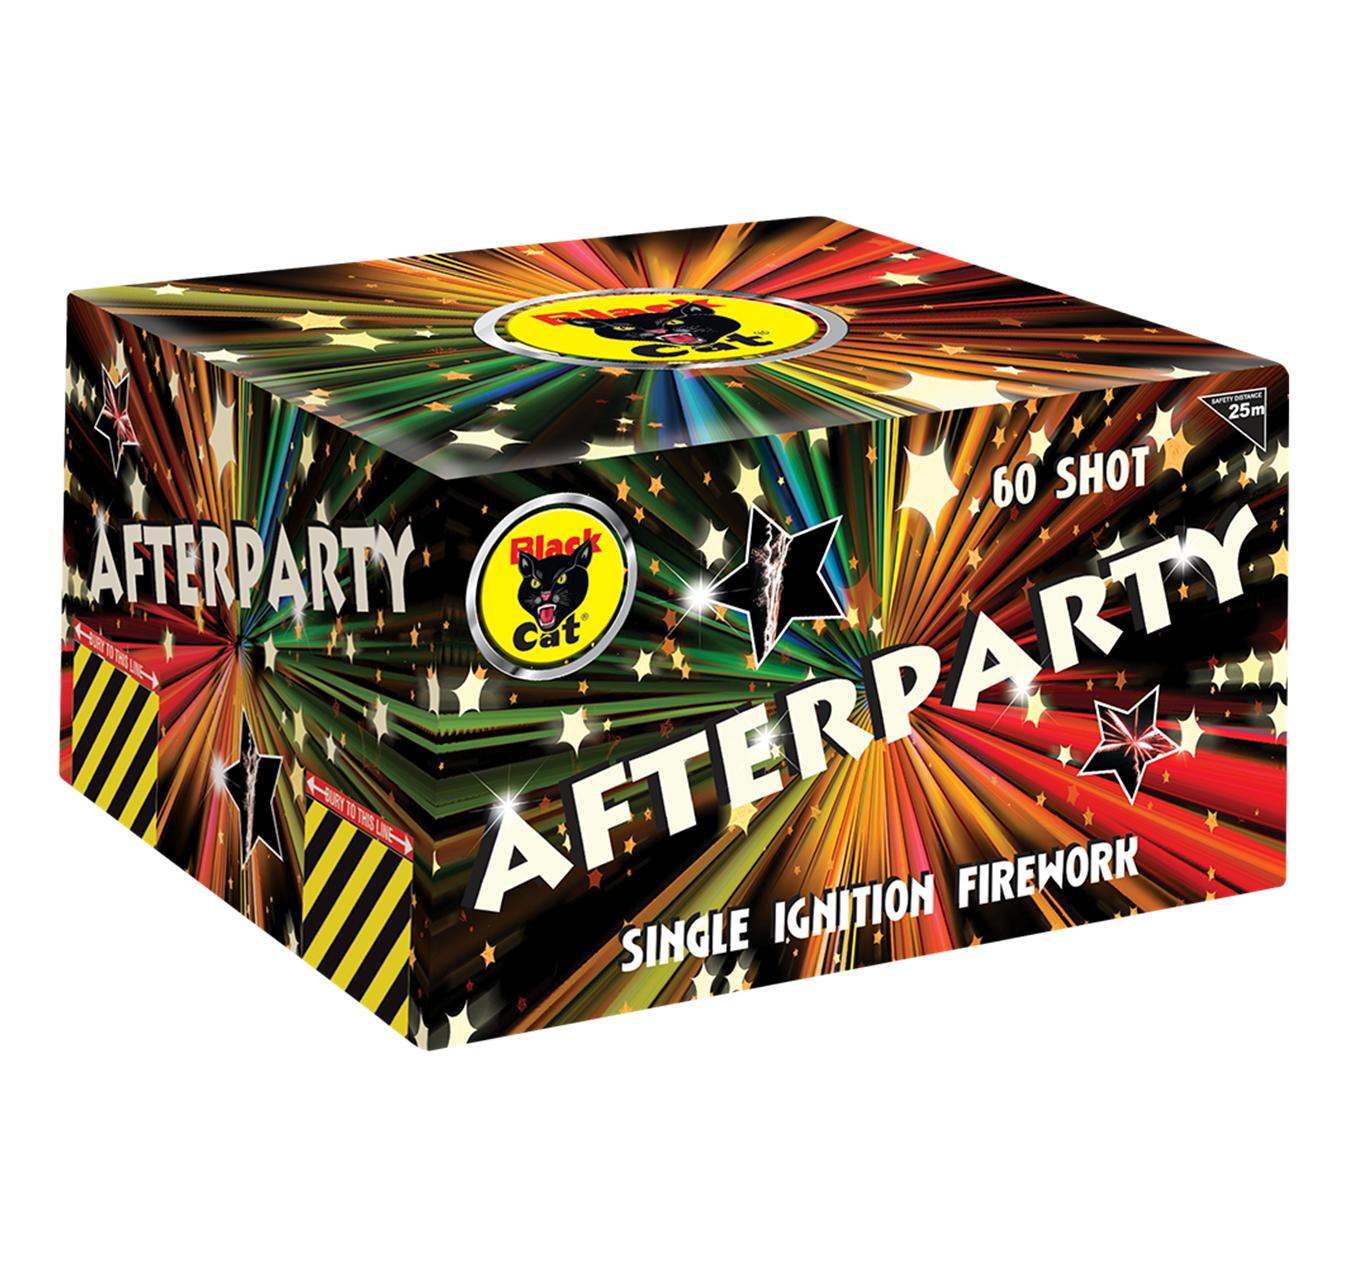 AFTER PARTY - 60 Shot